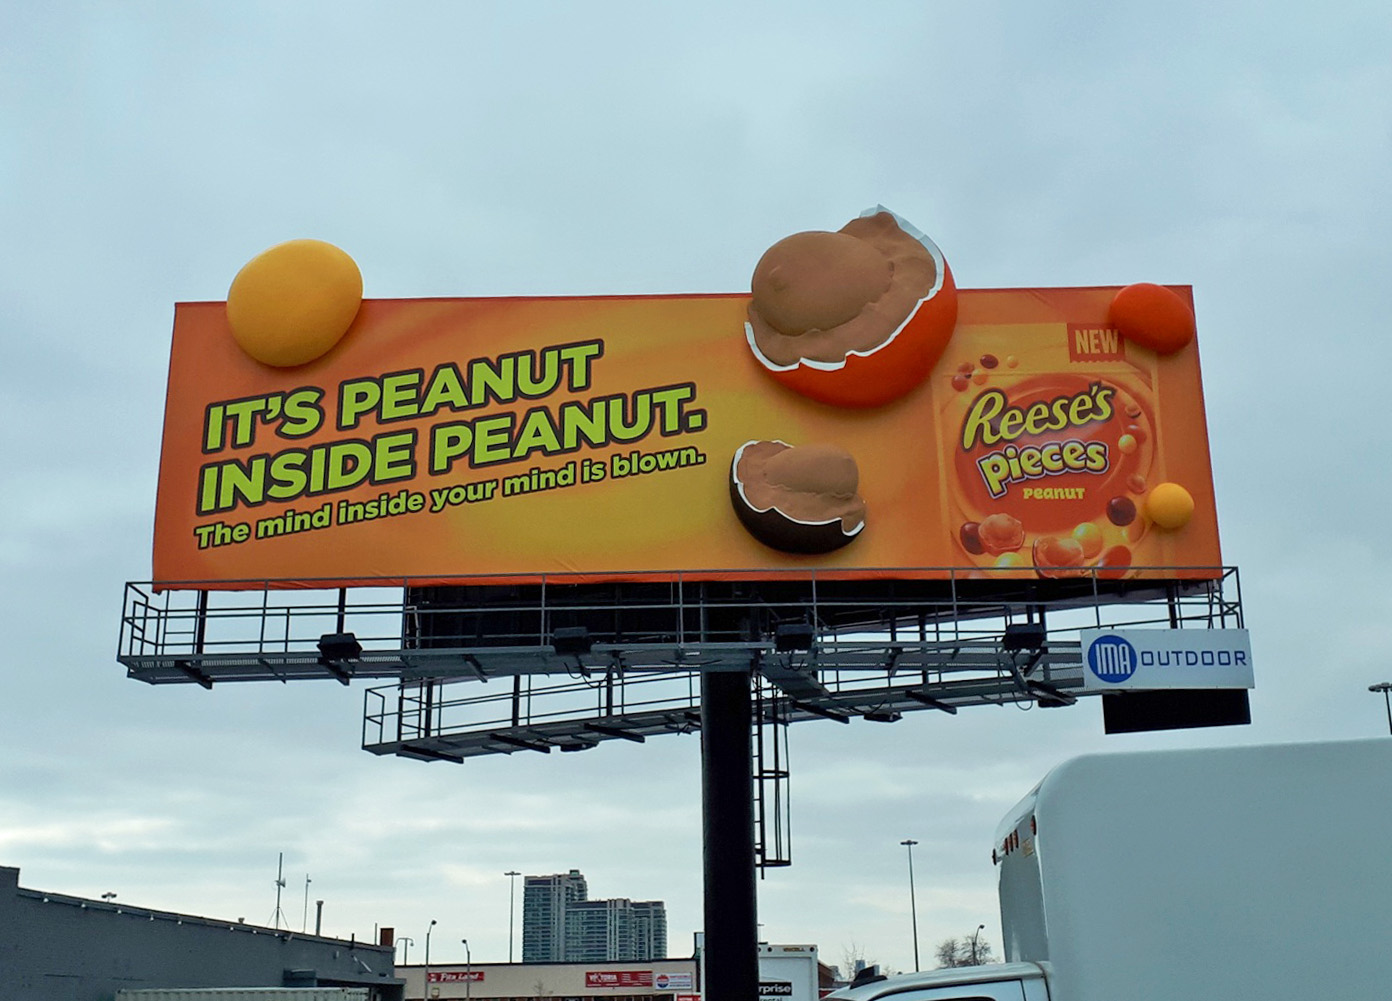 Reese's Pieces 3D extensions for print billboard in Toronto, ON